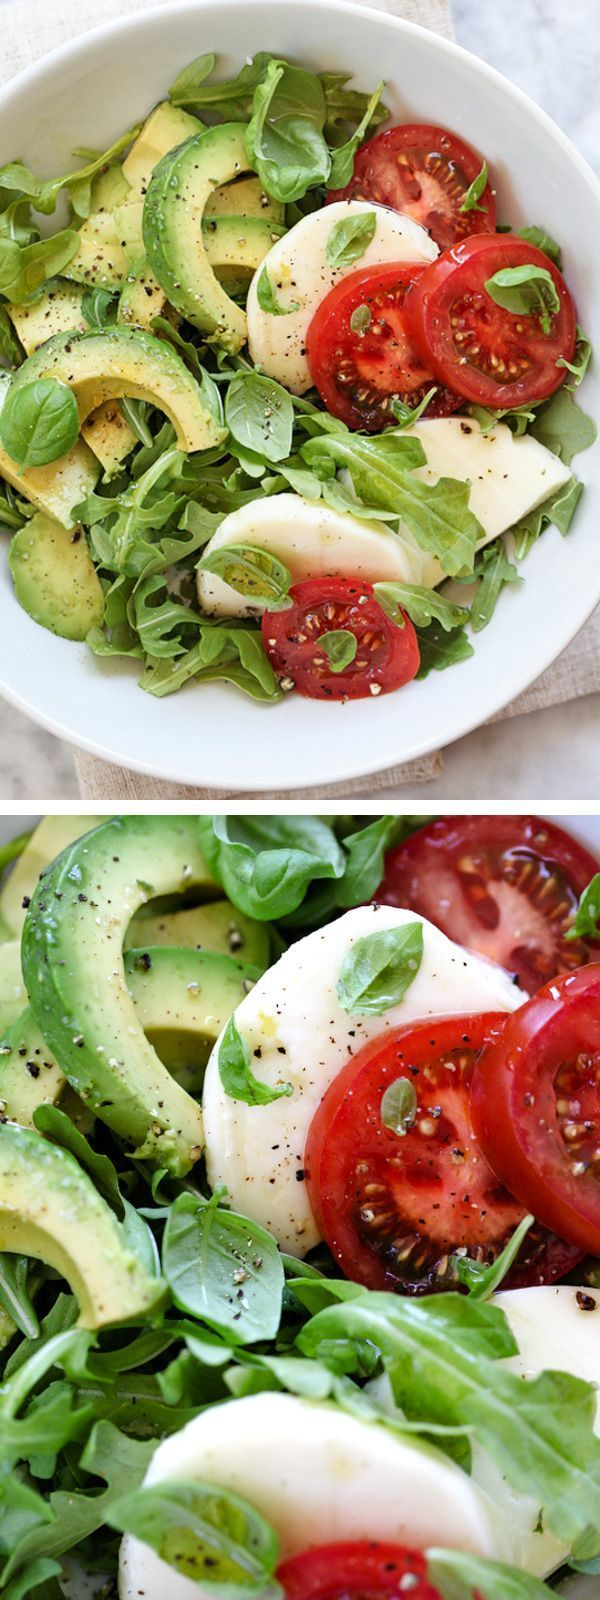 I'm all about getting simple and eating clean this week. Exactly why I LOVE my single serving recipe for Avocado Caprese Salad on http://www.foodiecrush.com #avocado #caprese #mozzarella